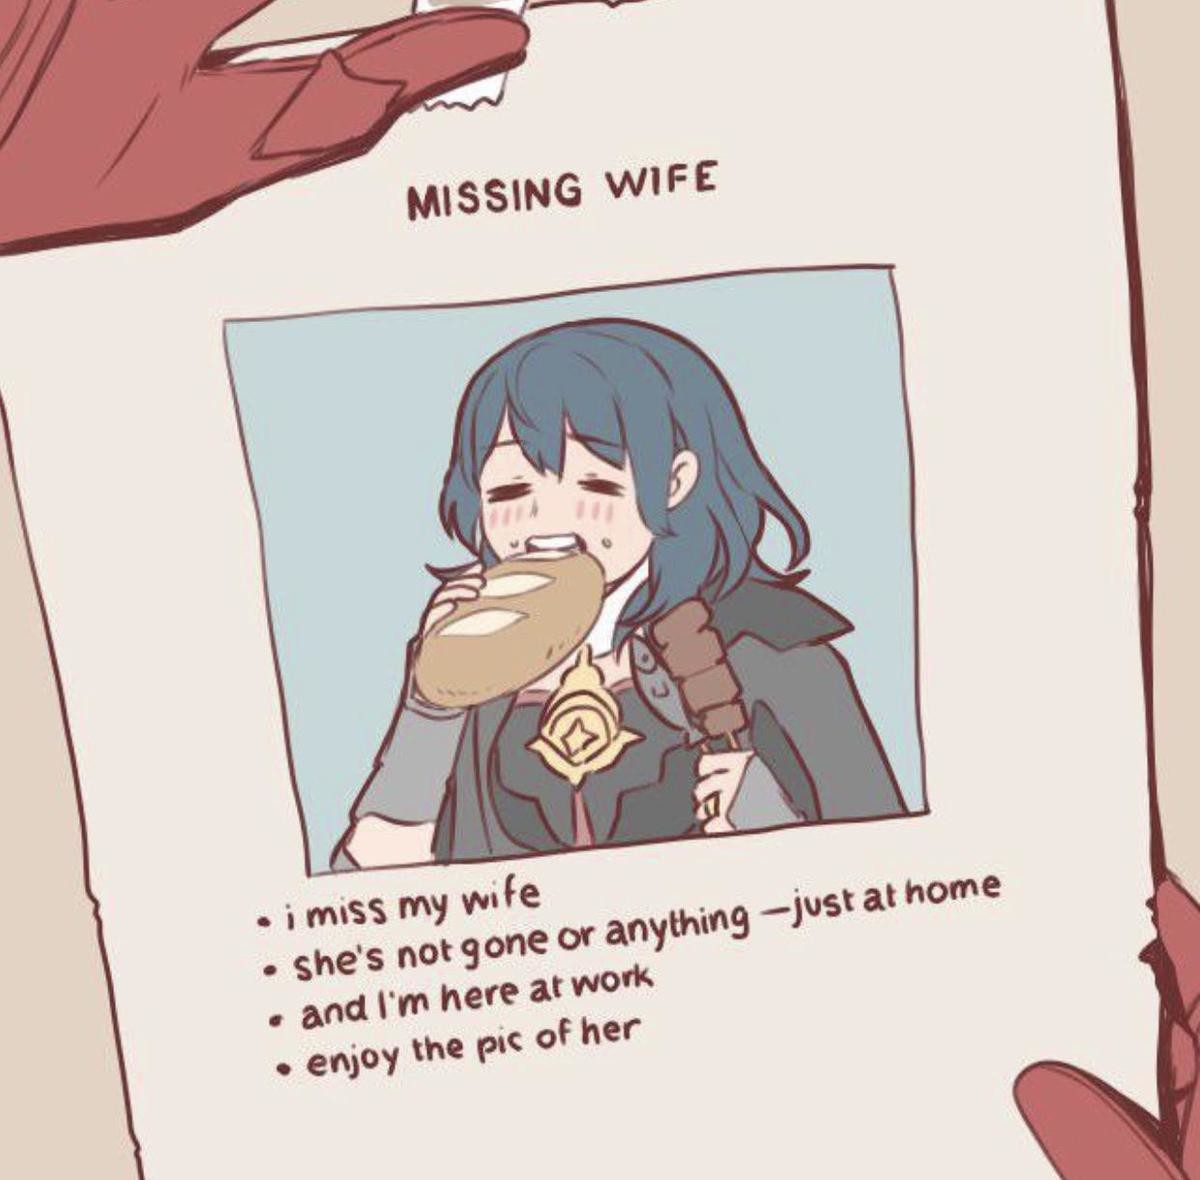 tearful buffy Beaver. .. Imagine waif-ing Edelgard when even as fem Byleth you can have Dorothea or Mercedes